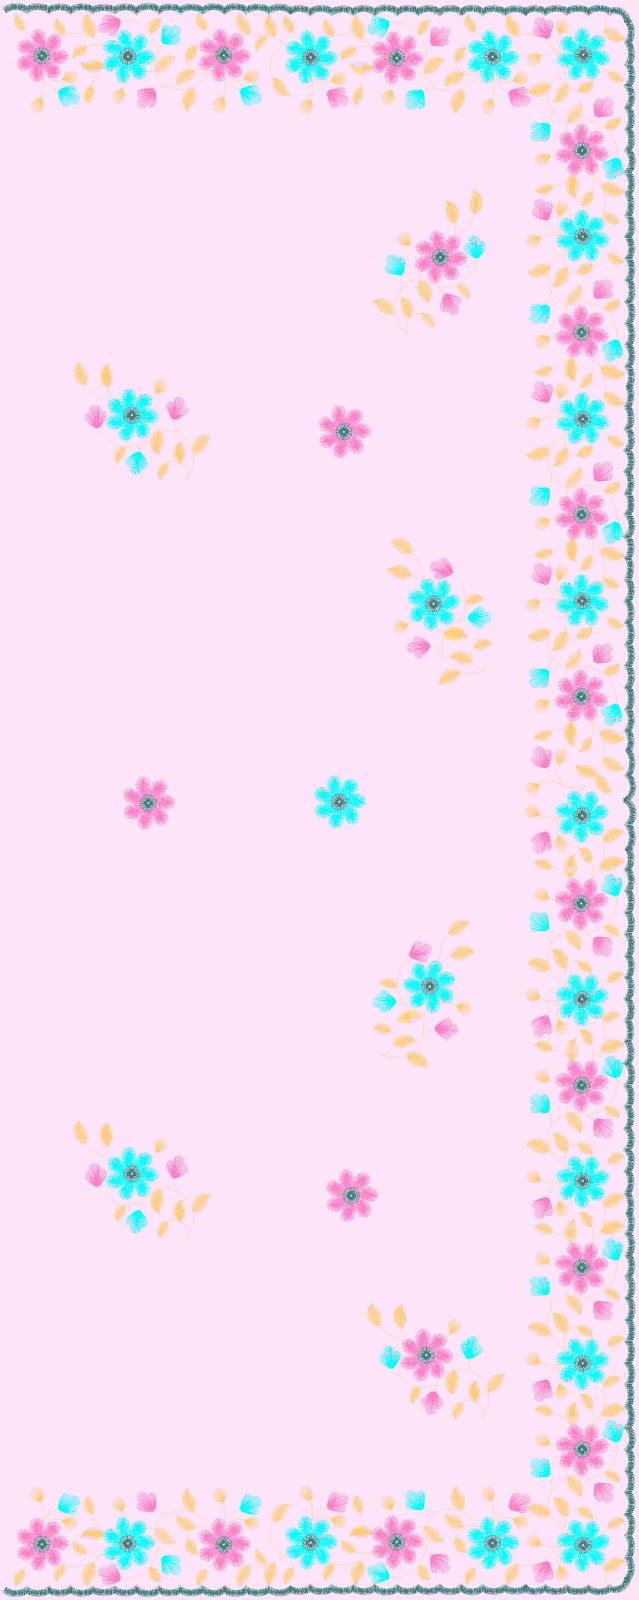 Displaying 17> Images For - Colorful Fancy Borders Designs...